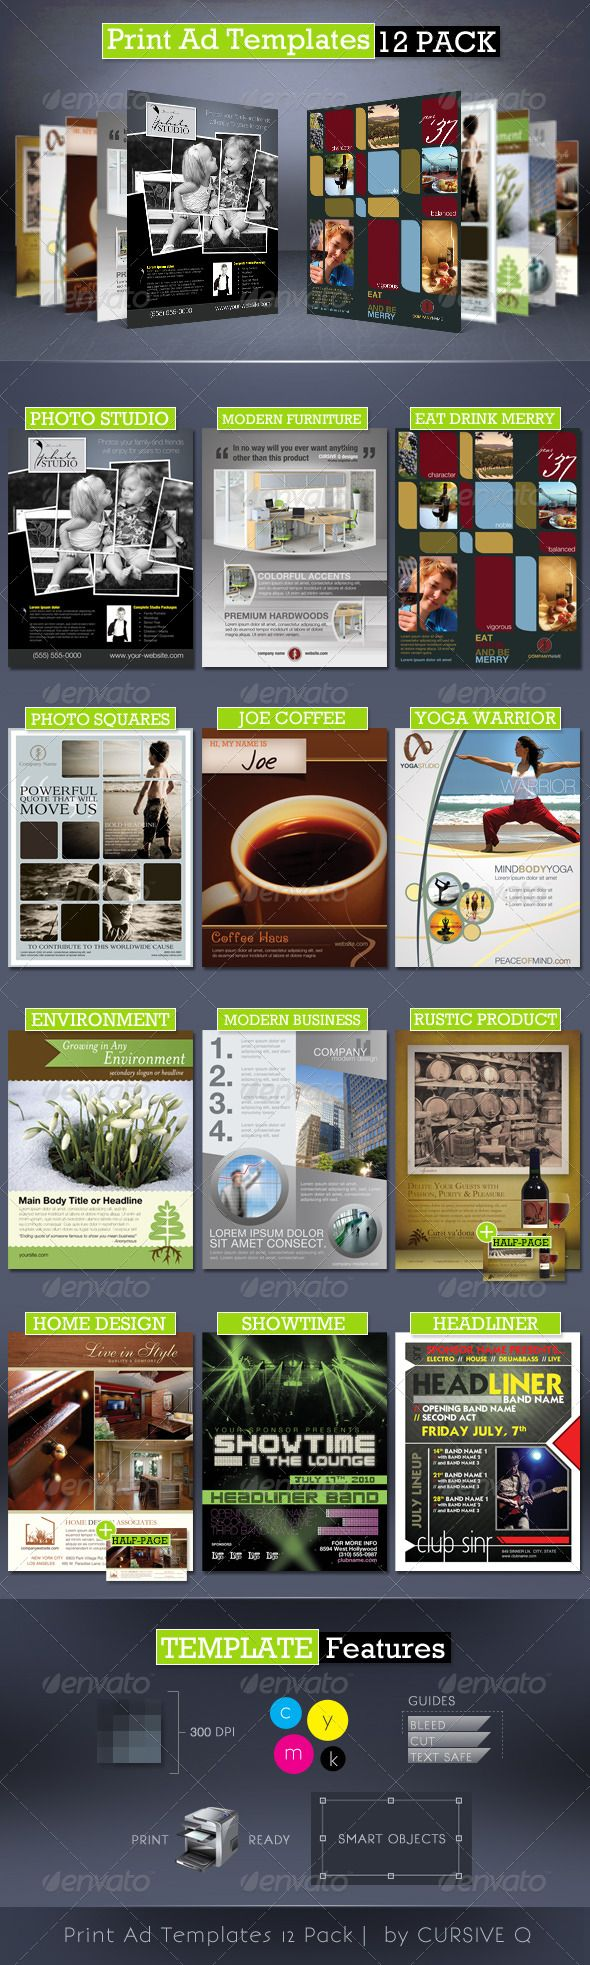 23 best Print Ad Templates images on Pinterest | Flyer template ...